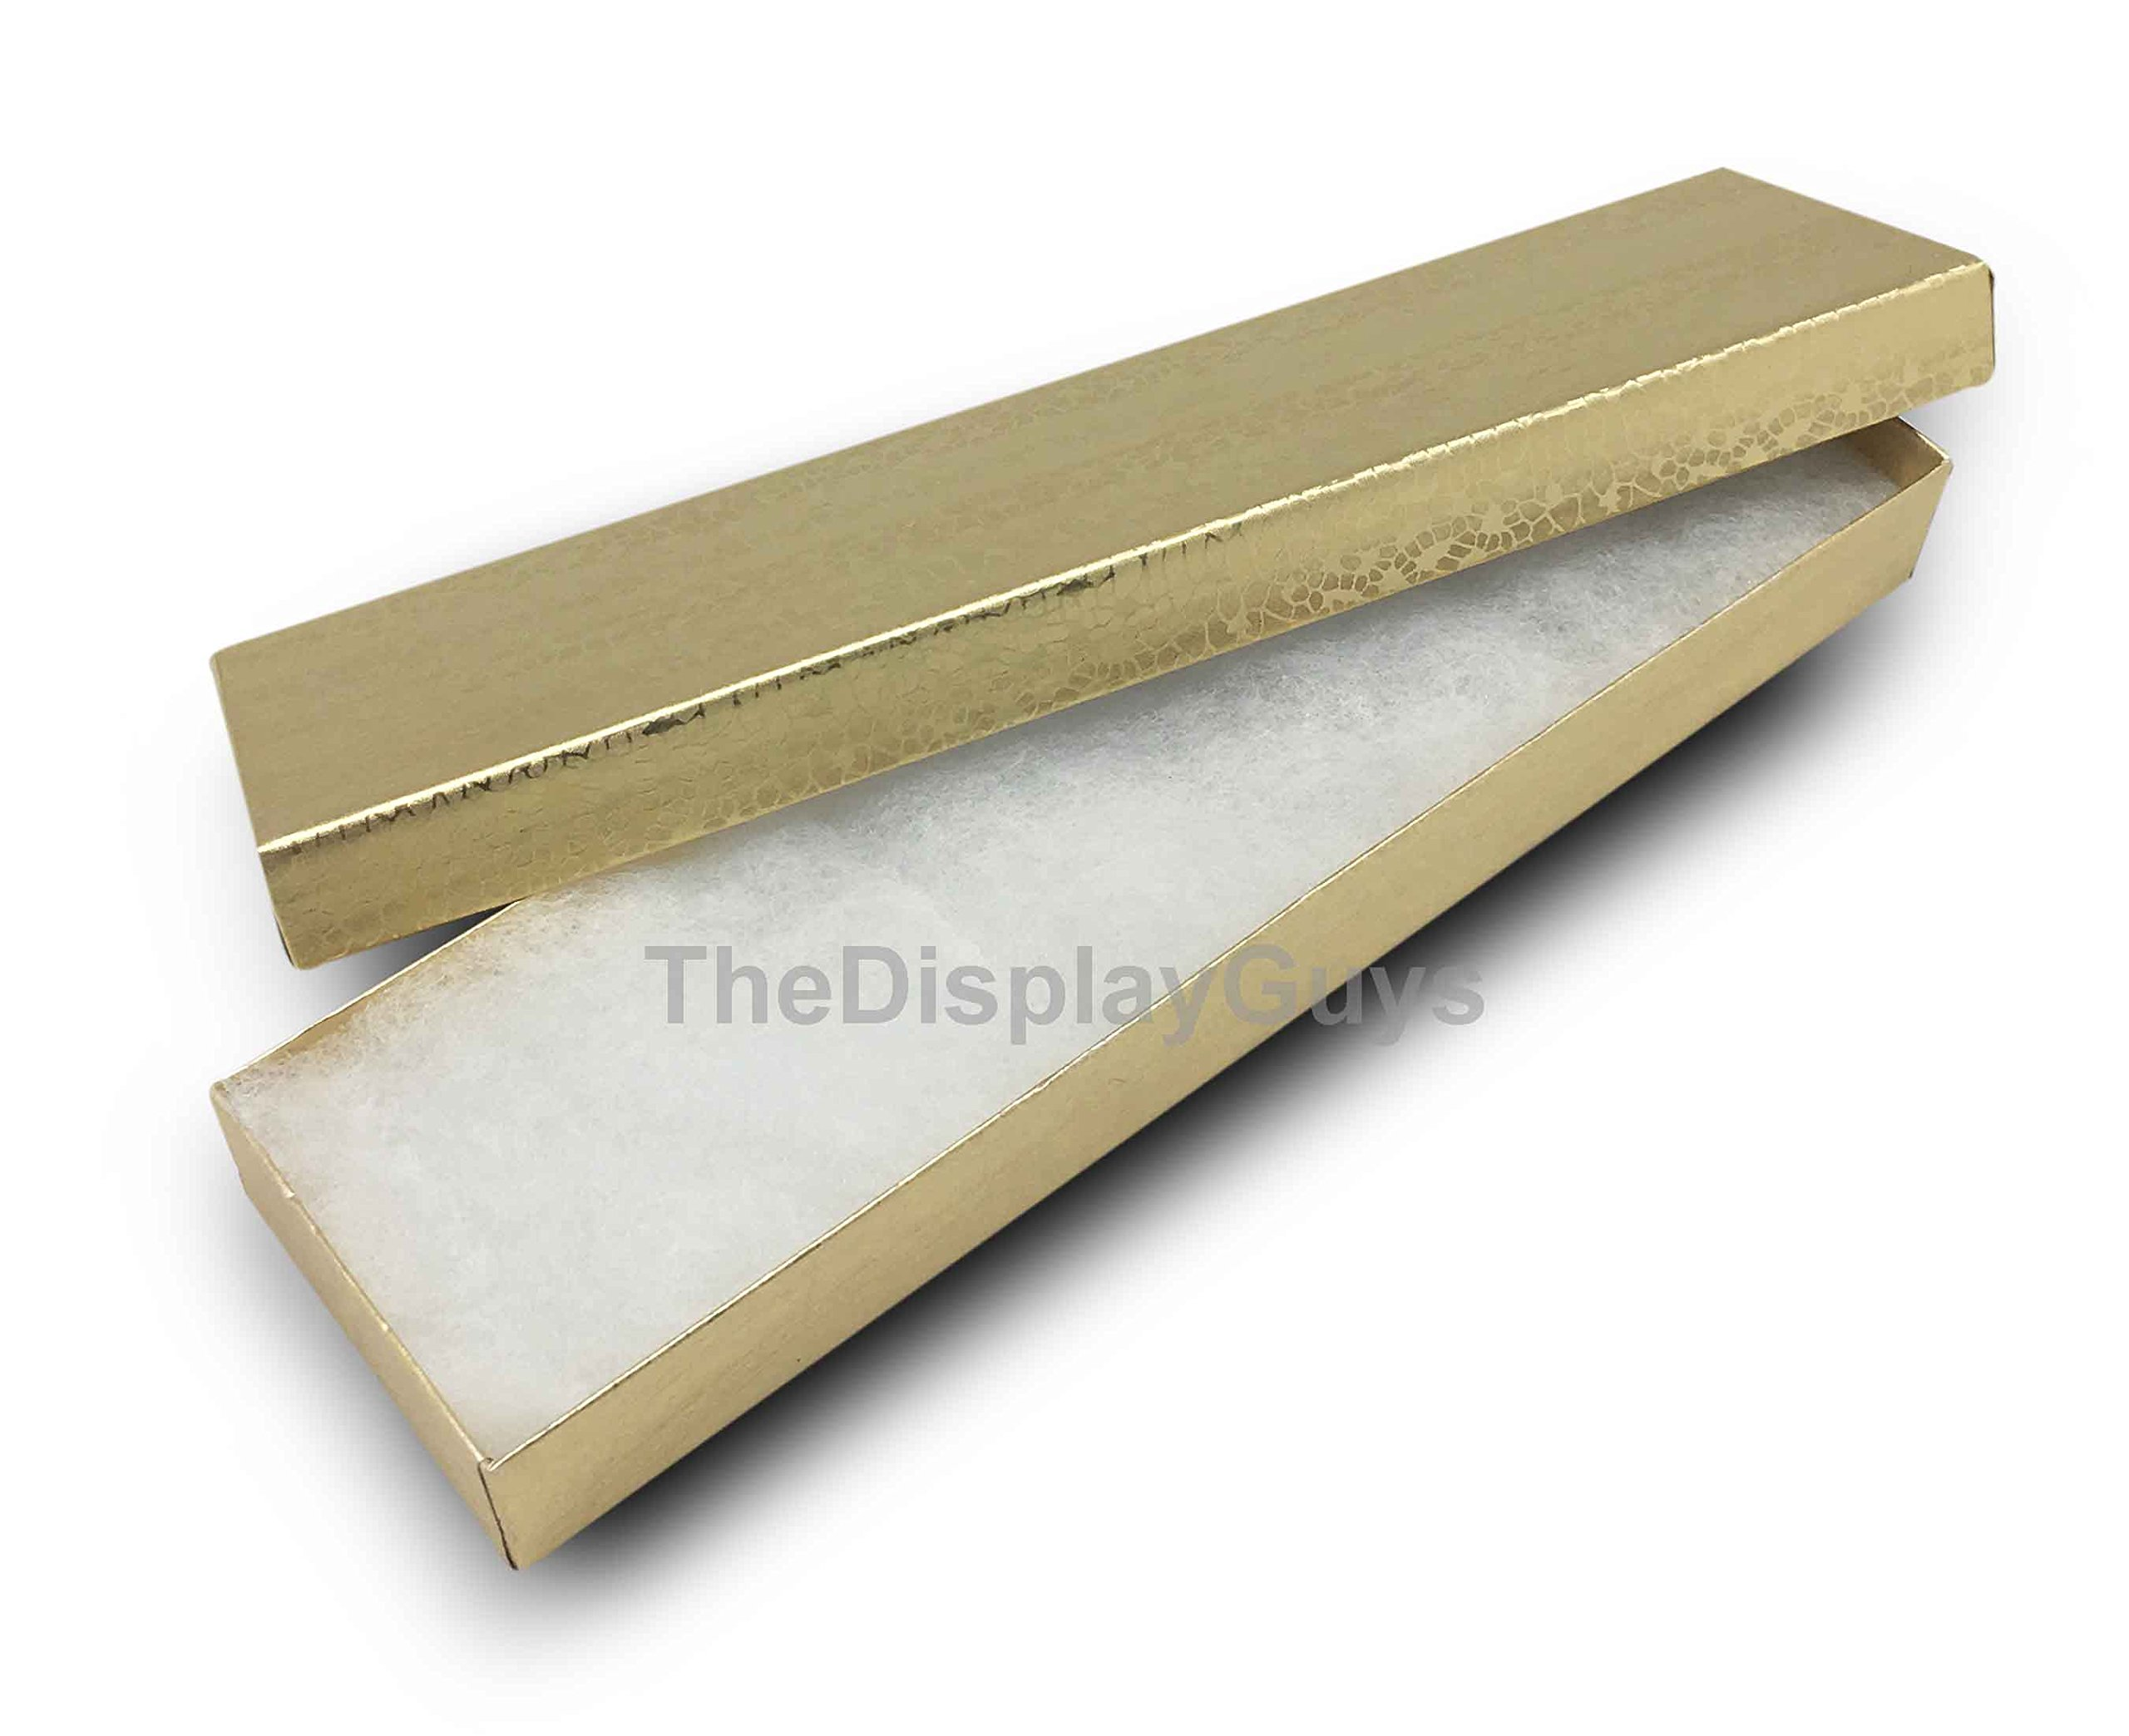 The Display Guys, Pack of 25 Gold 8x2x1 inches Cotton Filled Paper Jewelry Box Gift Display Case(#82)